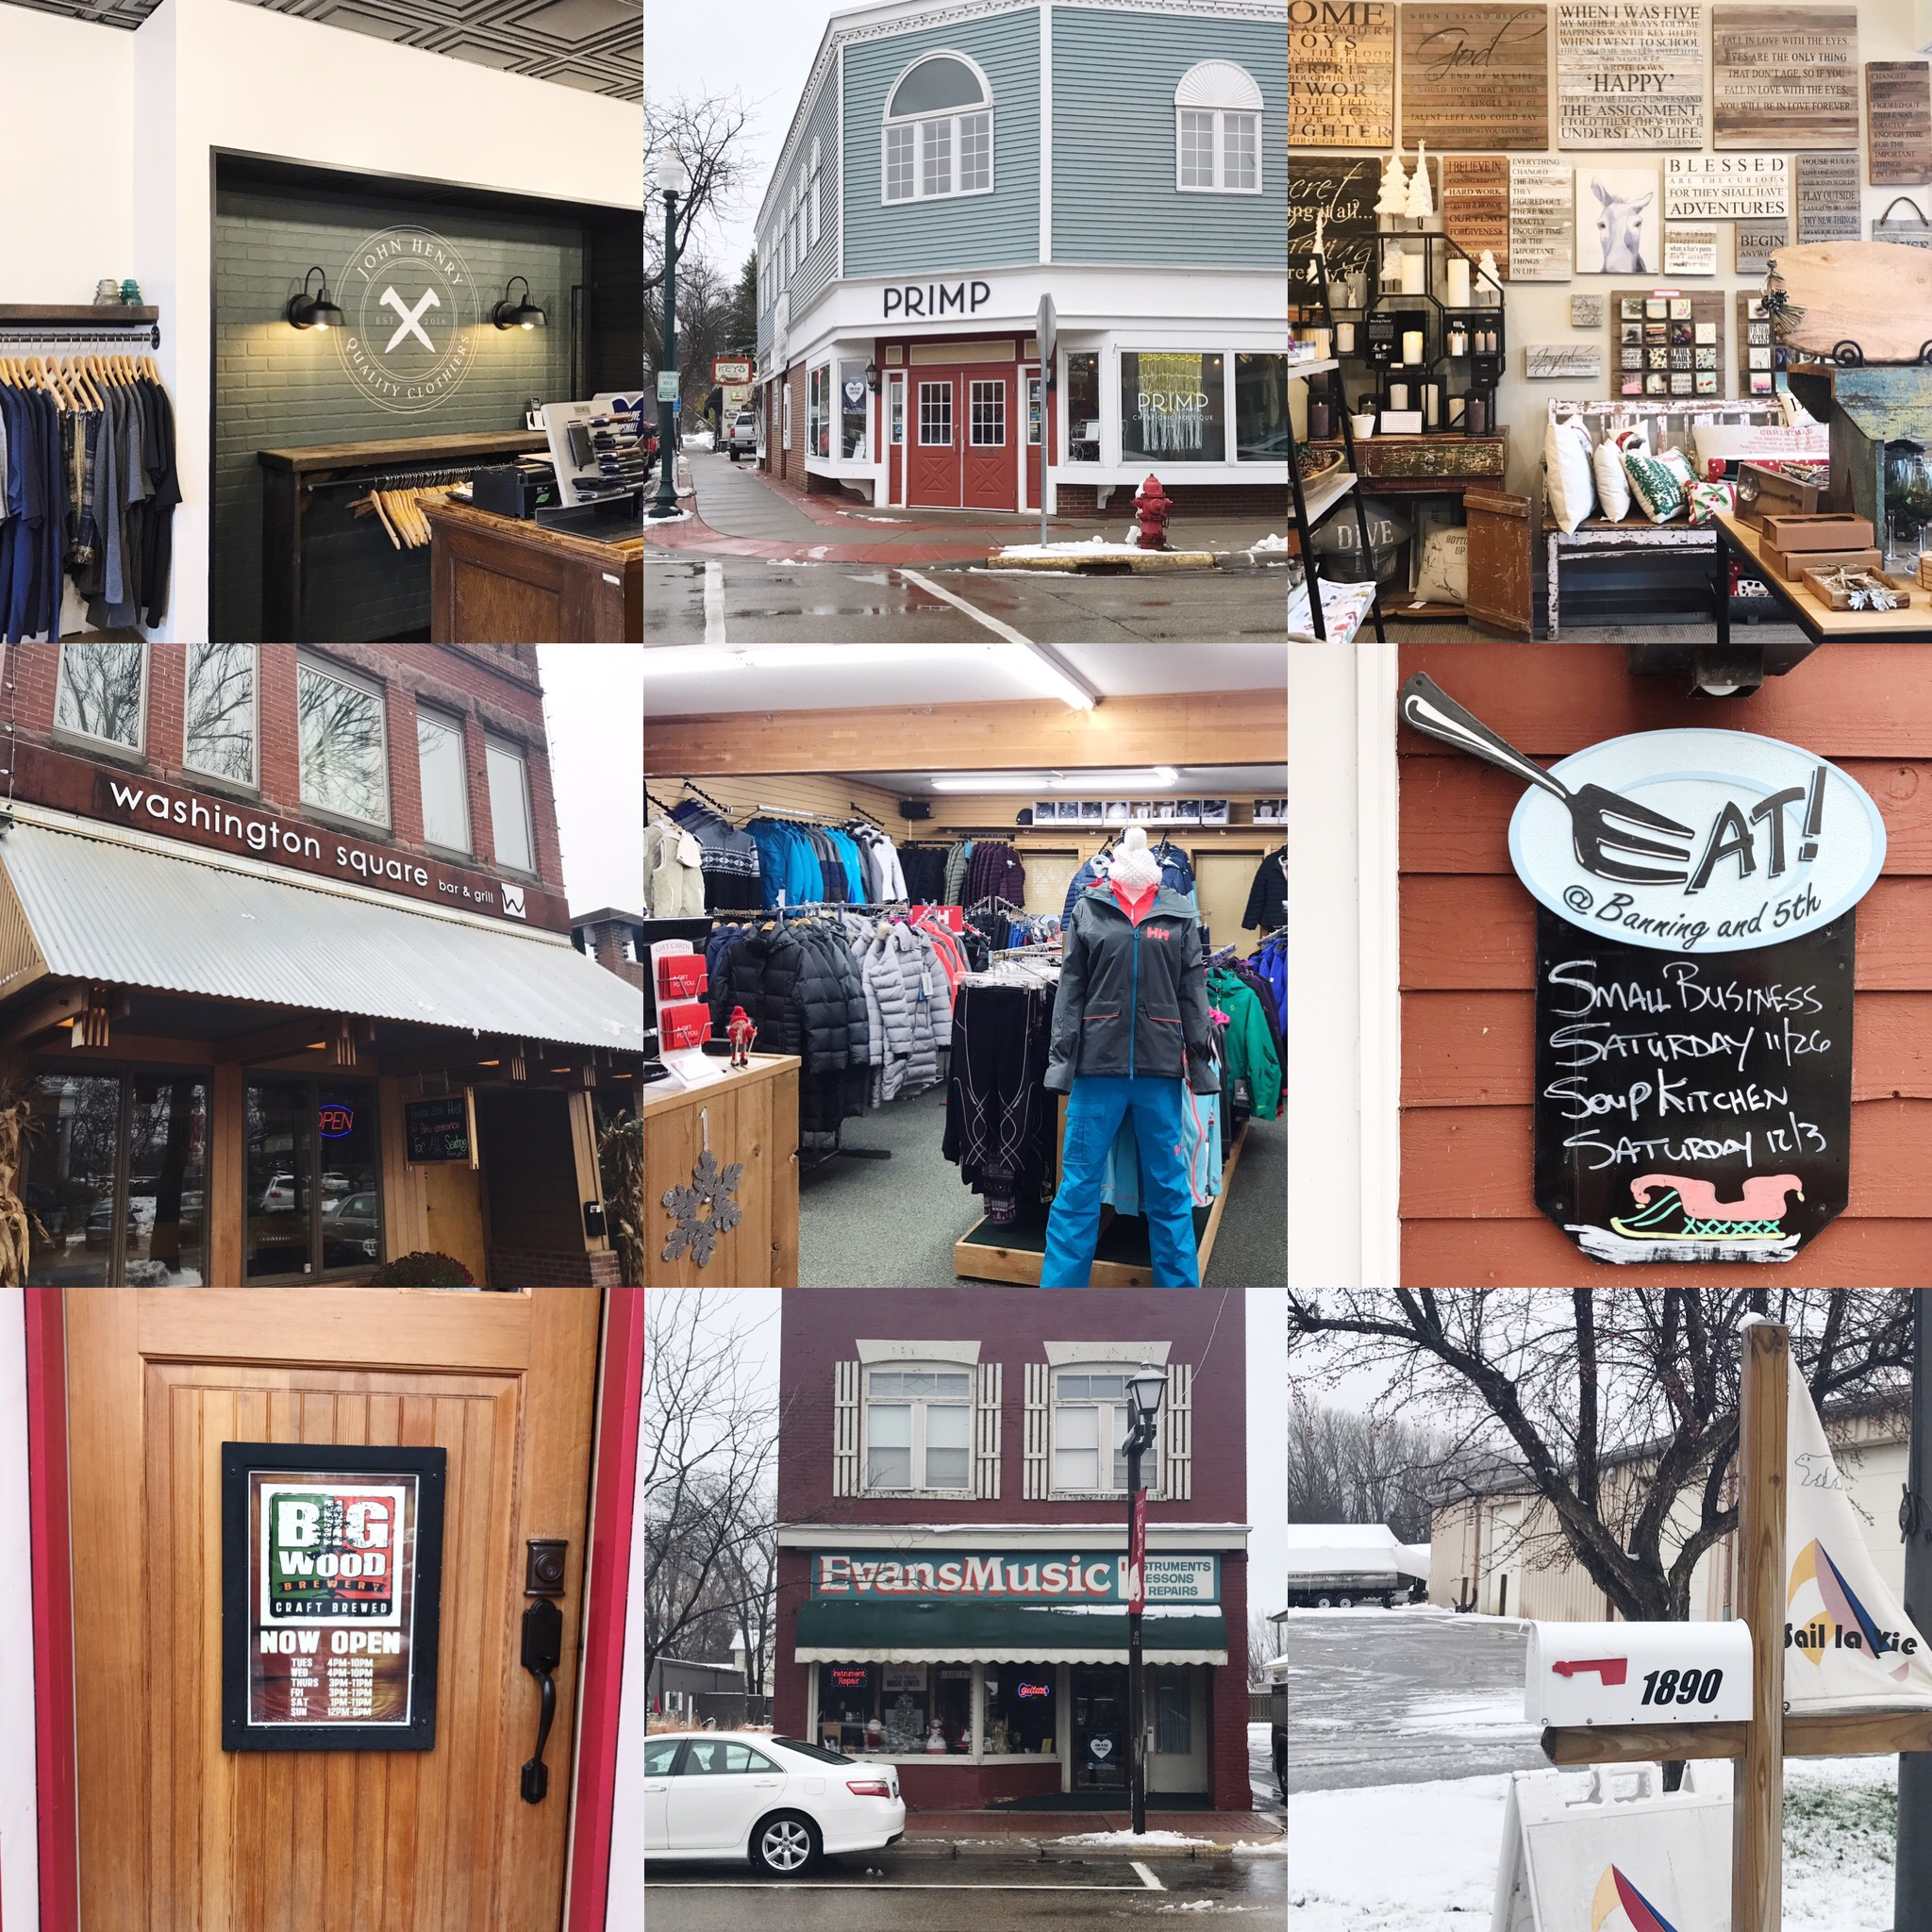 A few of our favorite shops in White Bear Lake (Left to right, top row) John Henry, Primp, Good Things. (middle row) Washington Square Grill, Hi Tempo, Eat! (bottom row) Big Wood Brewery, Evans Music, Sail la Vie.